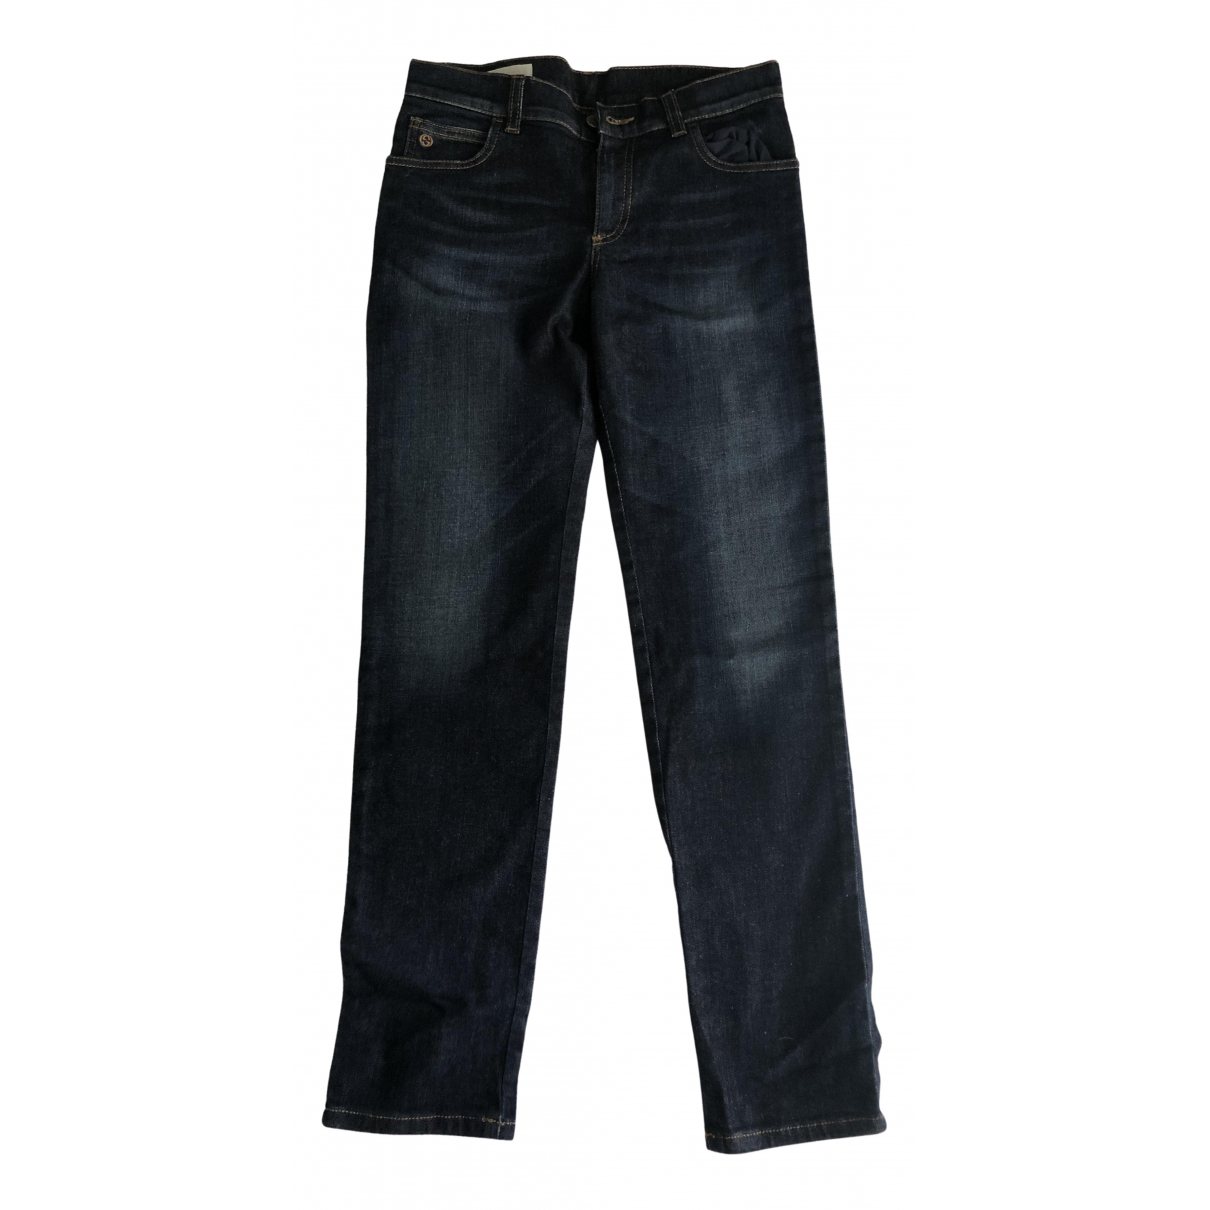 Gucci \N Blue Denim - Jeans Trousers for Kids 10 years - up to 142cm FR